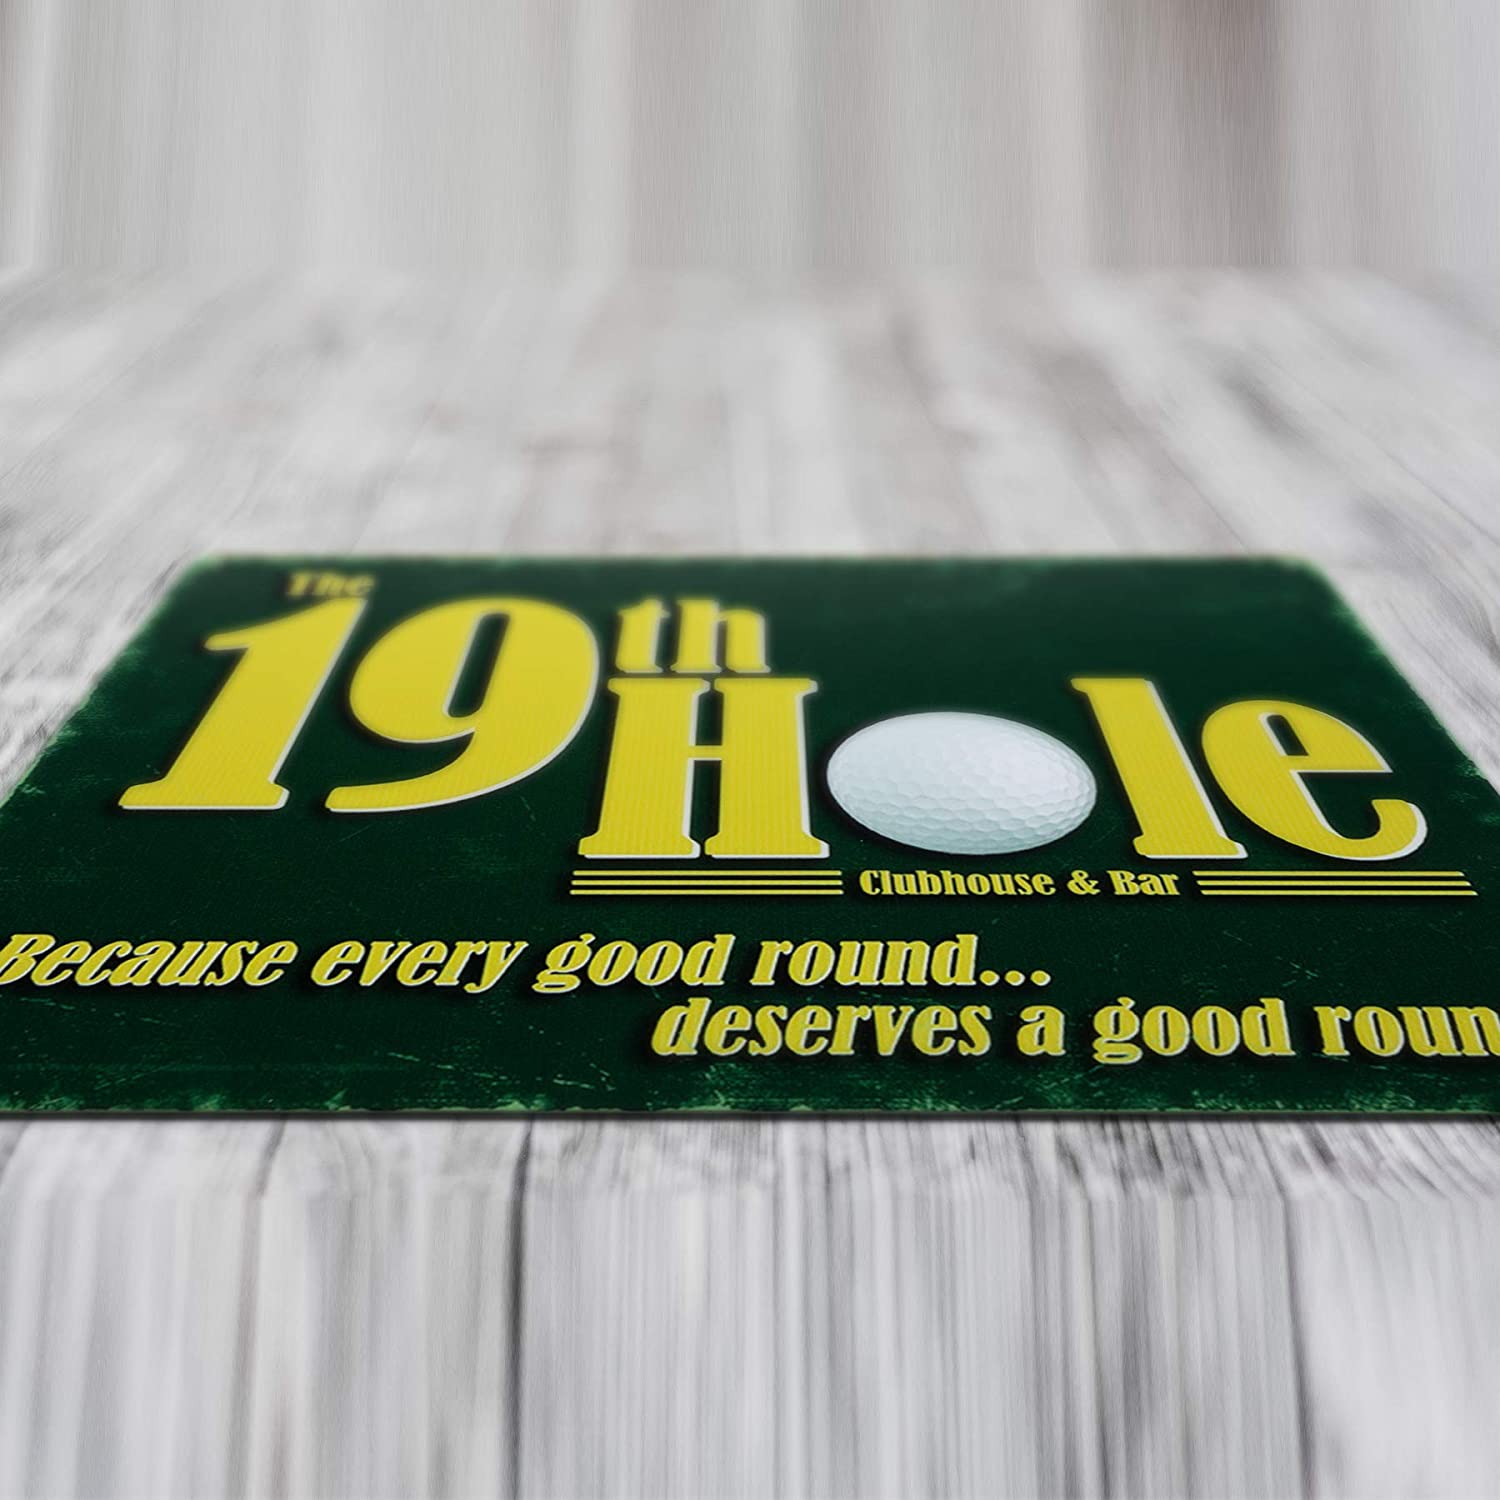 Because Every Good Round Deserves A Good Round Novelty Man Cave Golfers Tin Sign TSC187 19th Hole